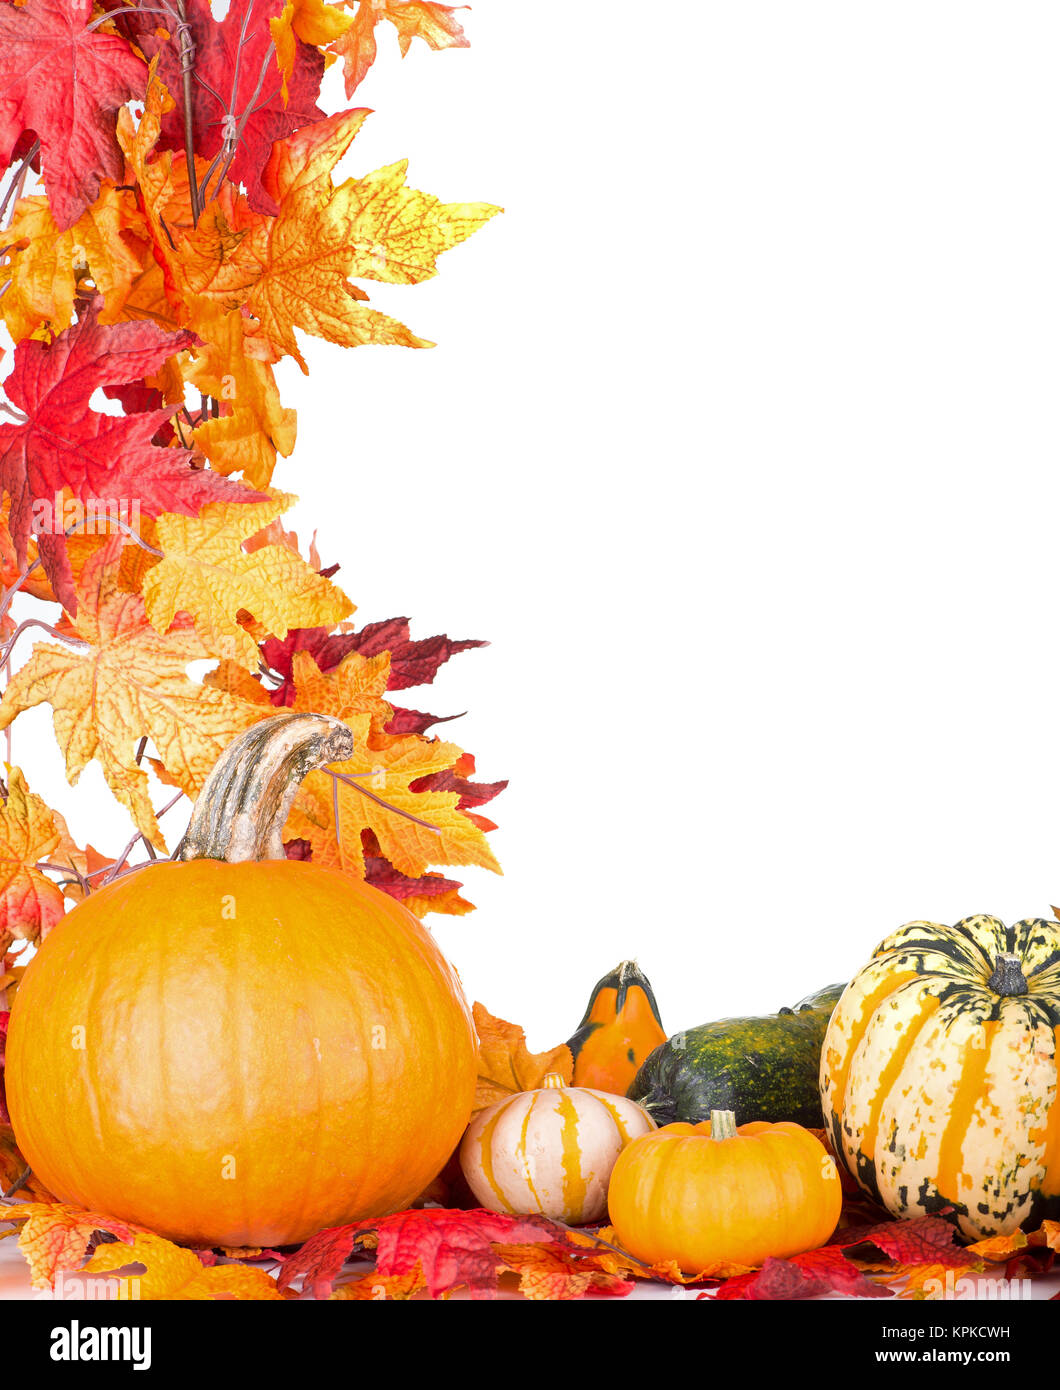 pumpkin and gourds with autumn leaf border on a white background